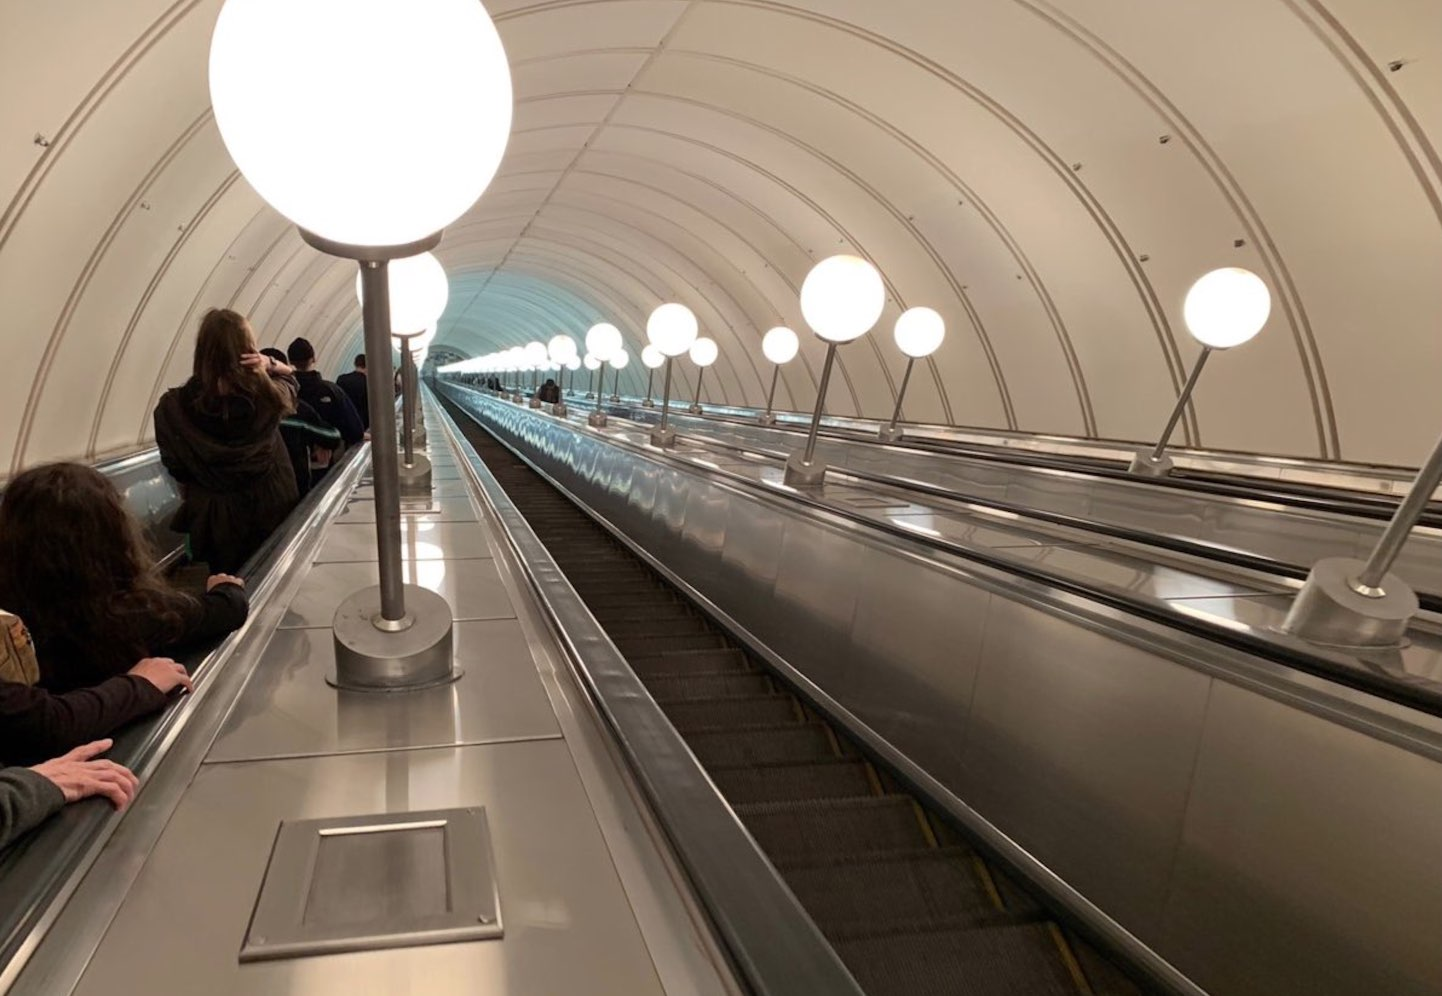 Going down the escalators of the Moscow Metro 3